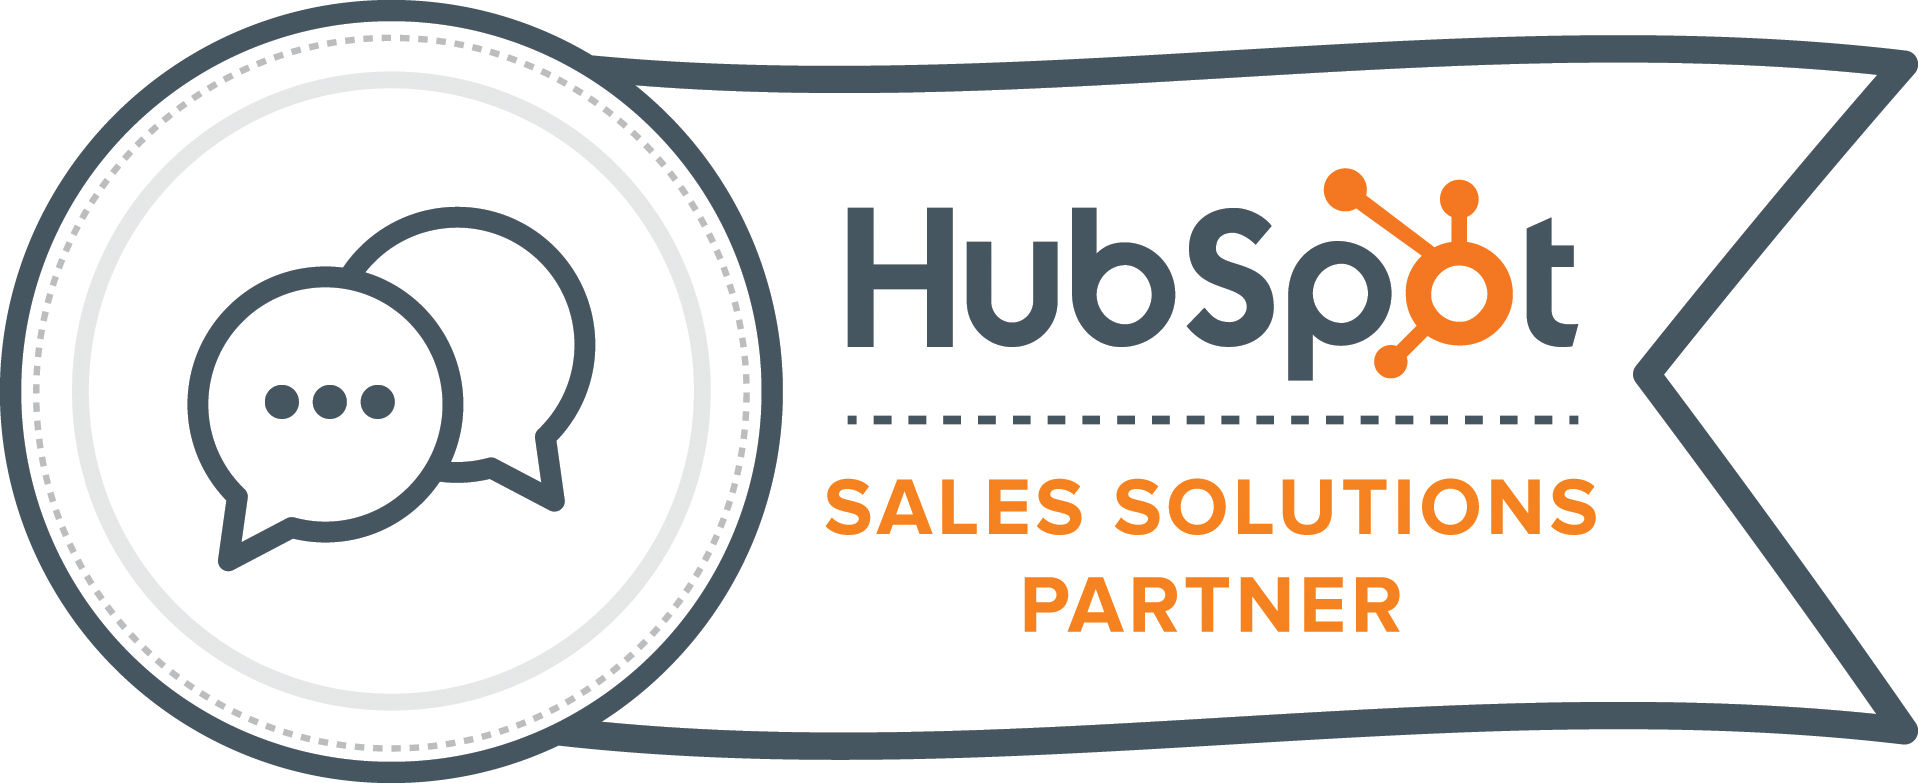 Sales_Partner_Badge_Solutions_Small.png